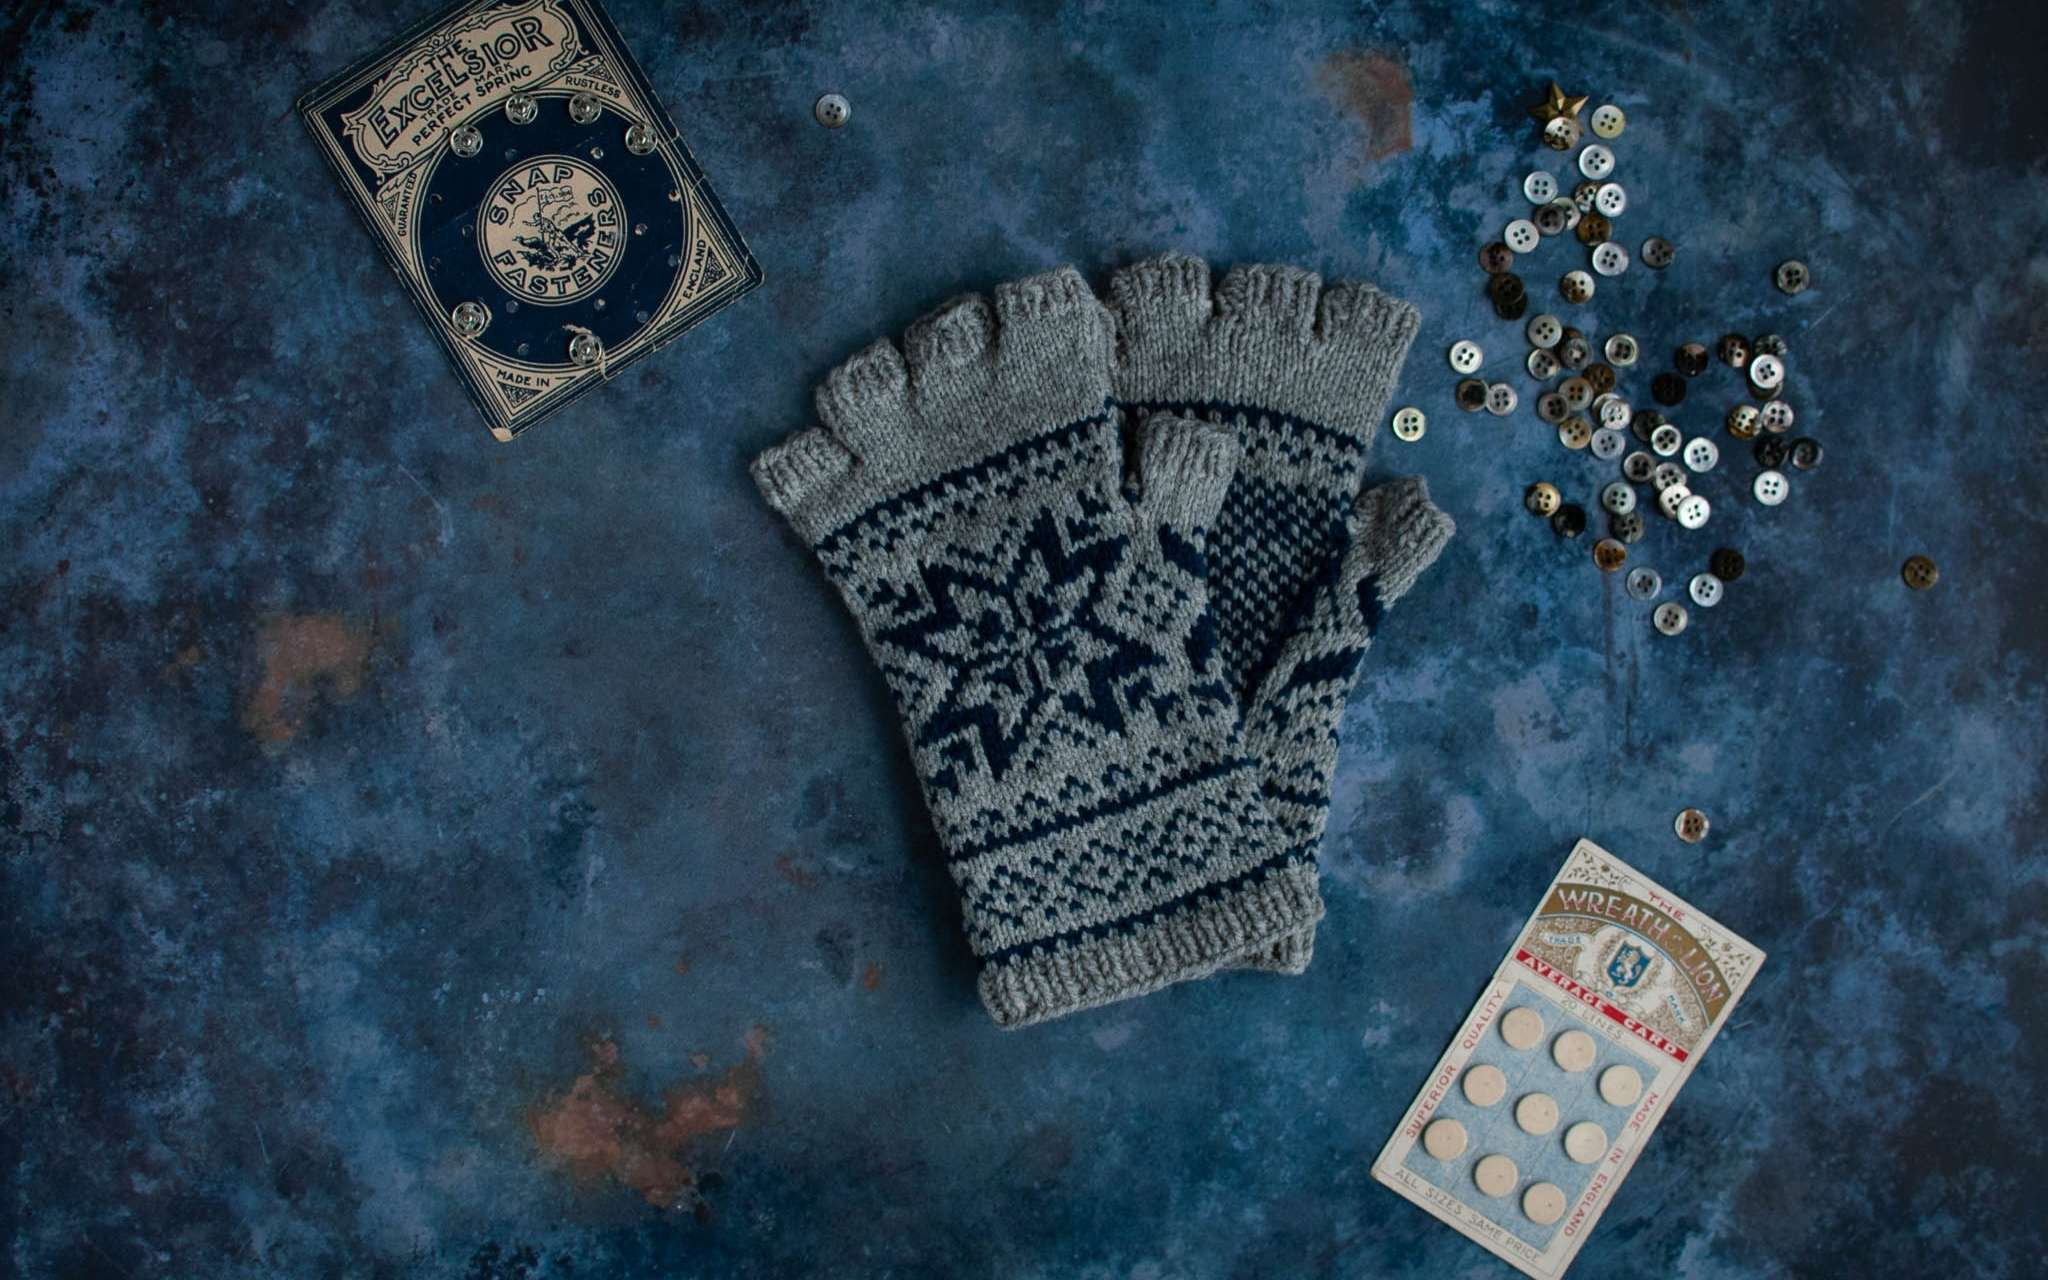 A pair navy and grey colourwork fingerless gloves lay flat on a moody blue background. Next to them are piles of blue and grey vintage buttons.